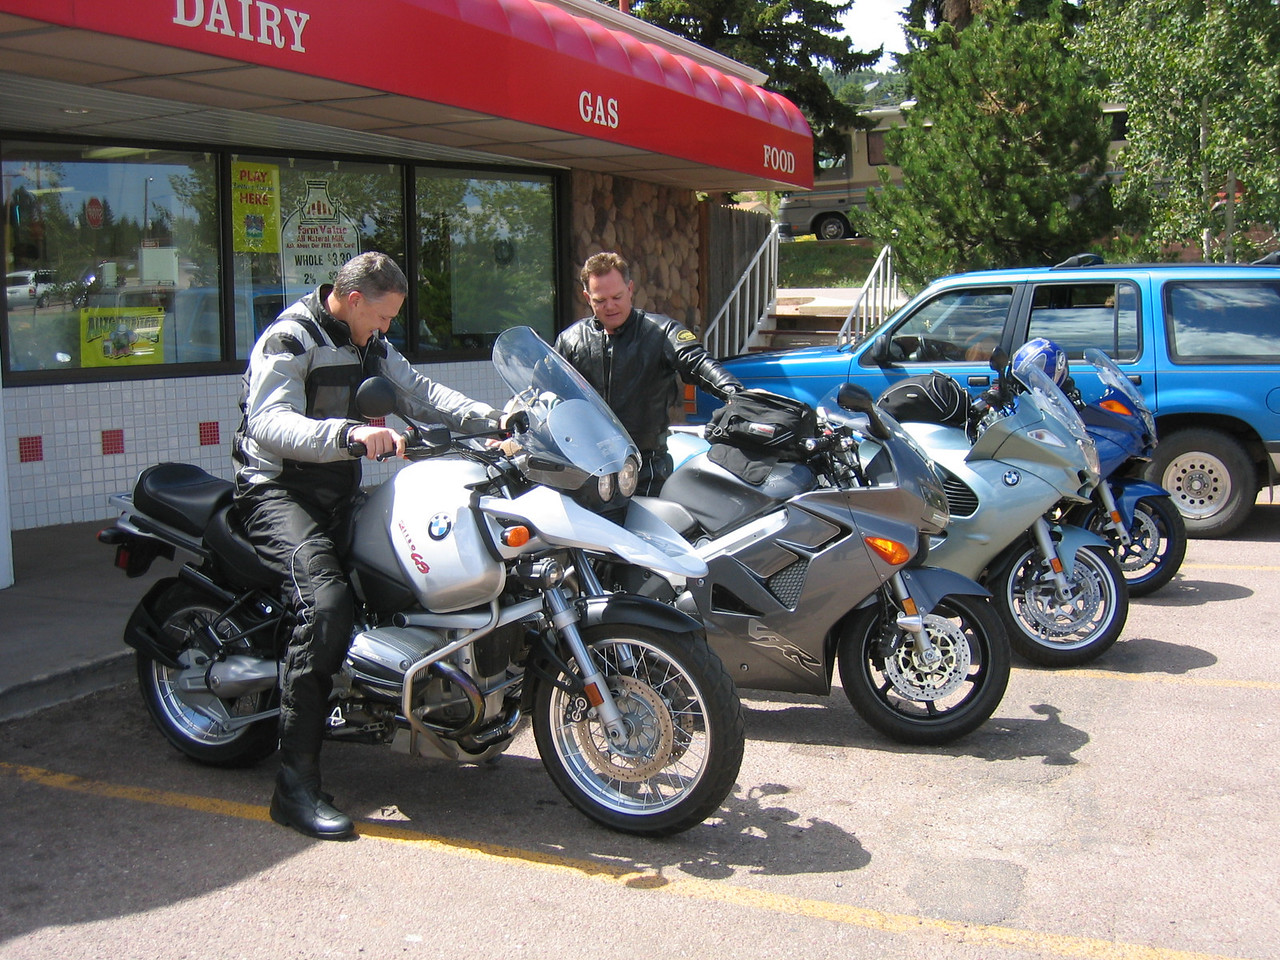 Steve, realizing his GS is parked the wrong way, graciously turns it around so I can take a picture of the bikes.  I'm too kind to let him know it looked better turned the other way (he he).